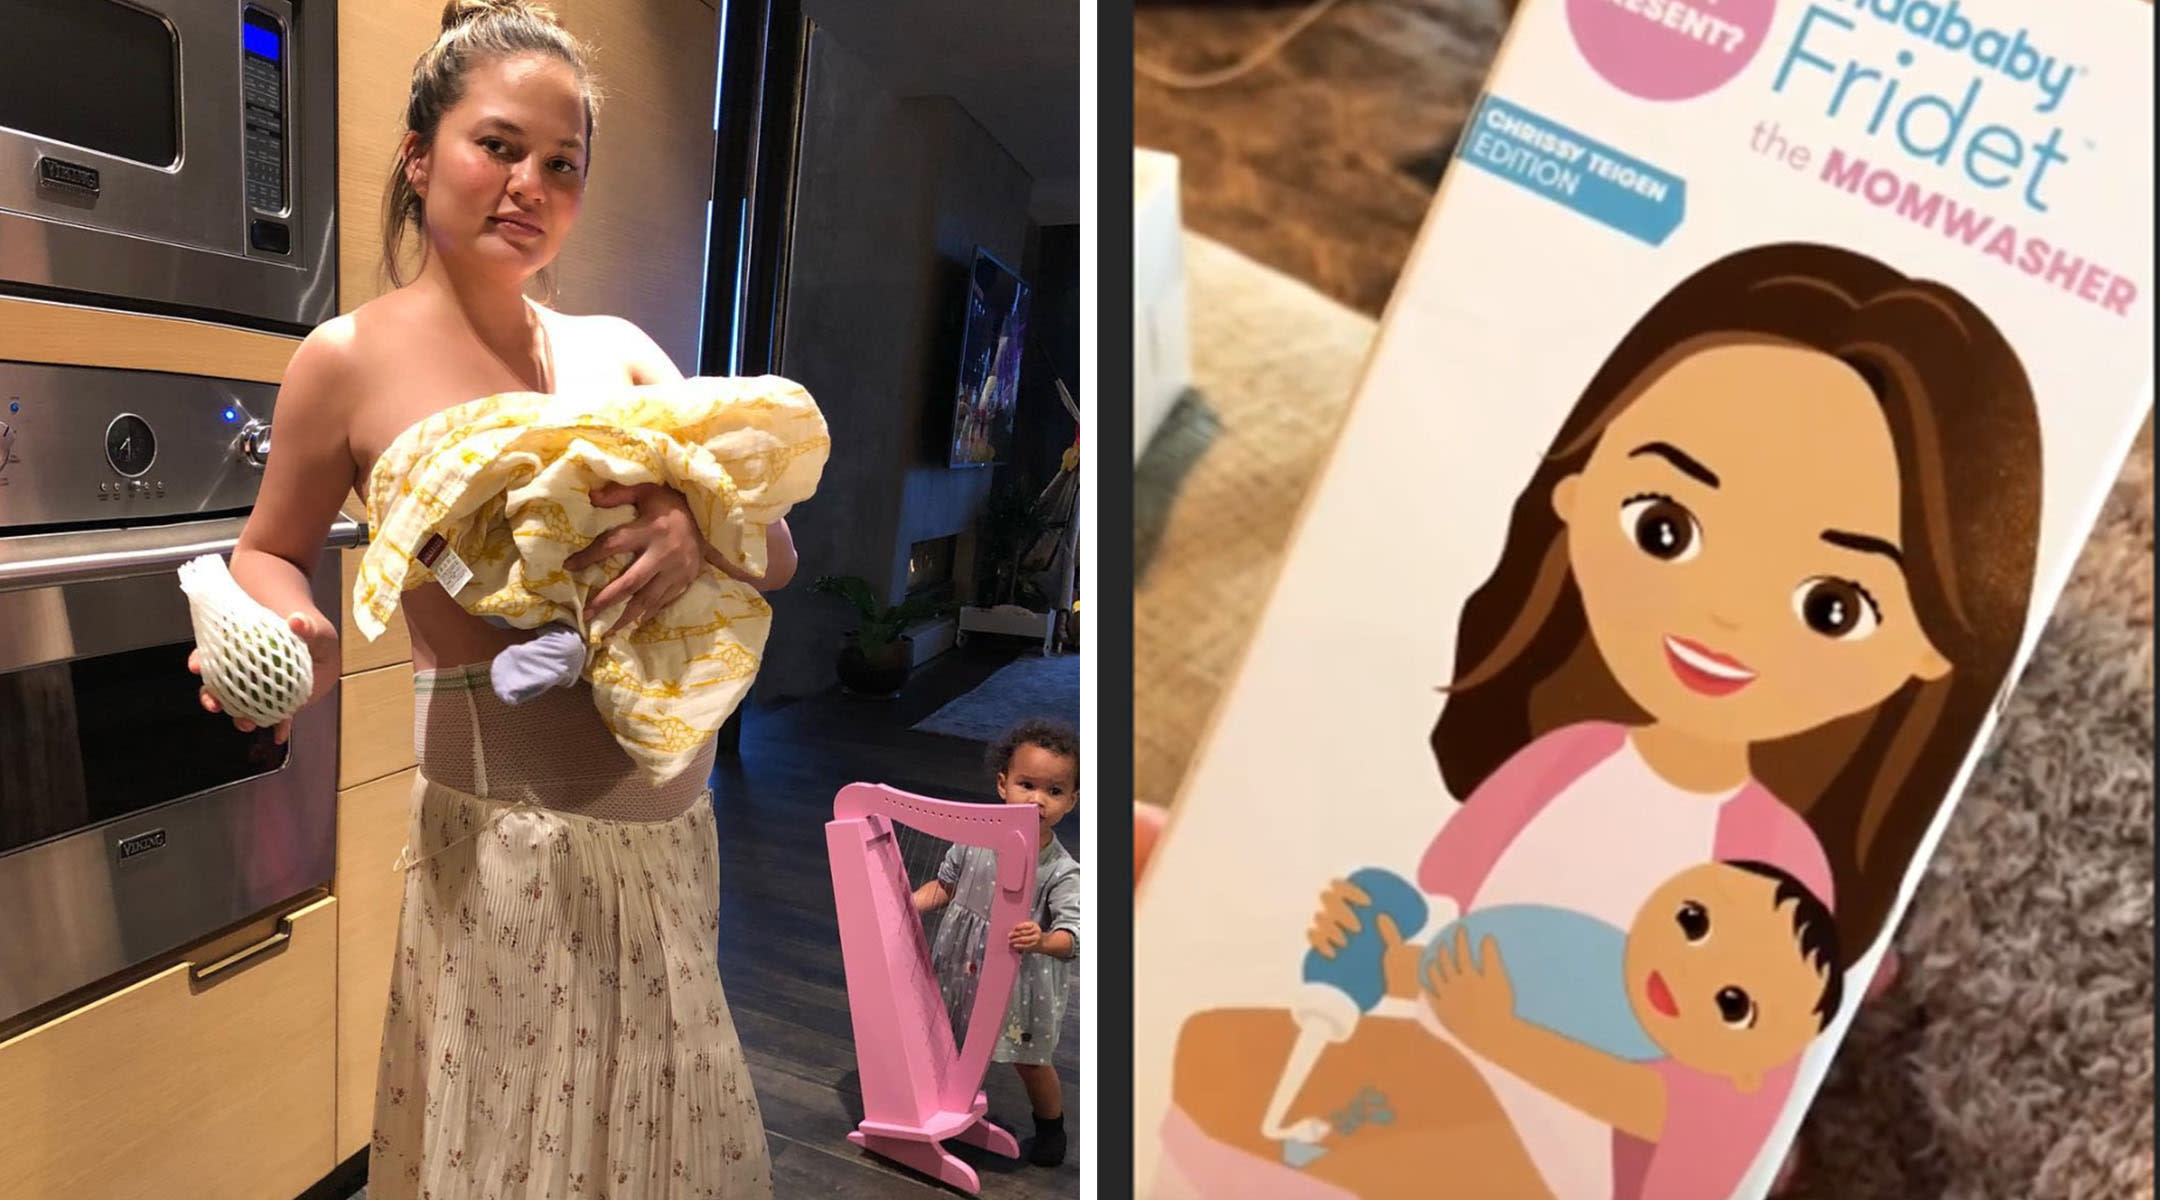 Chrissy Teigen version of the Fridababy Fridet MomWasher